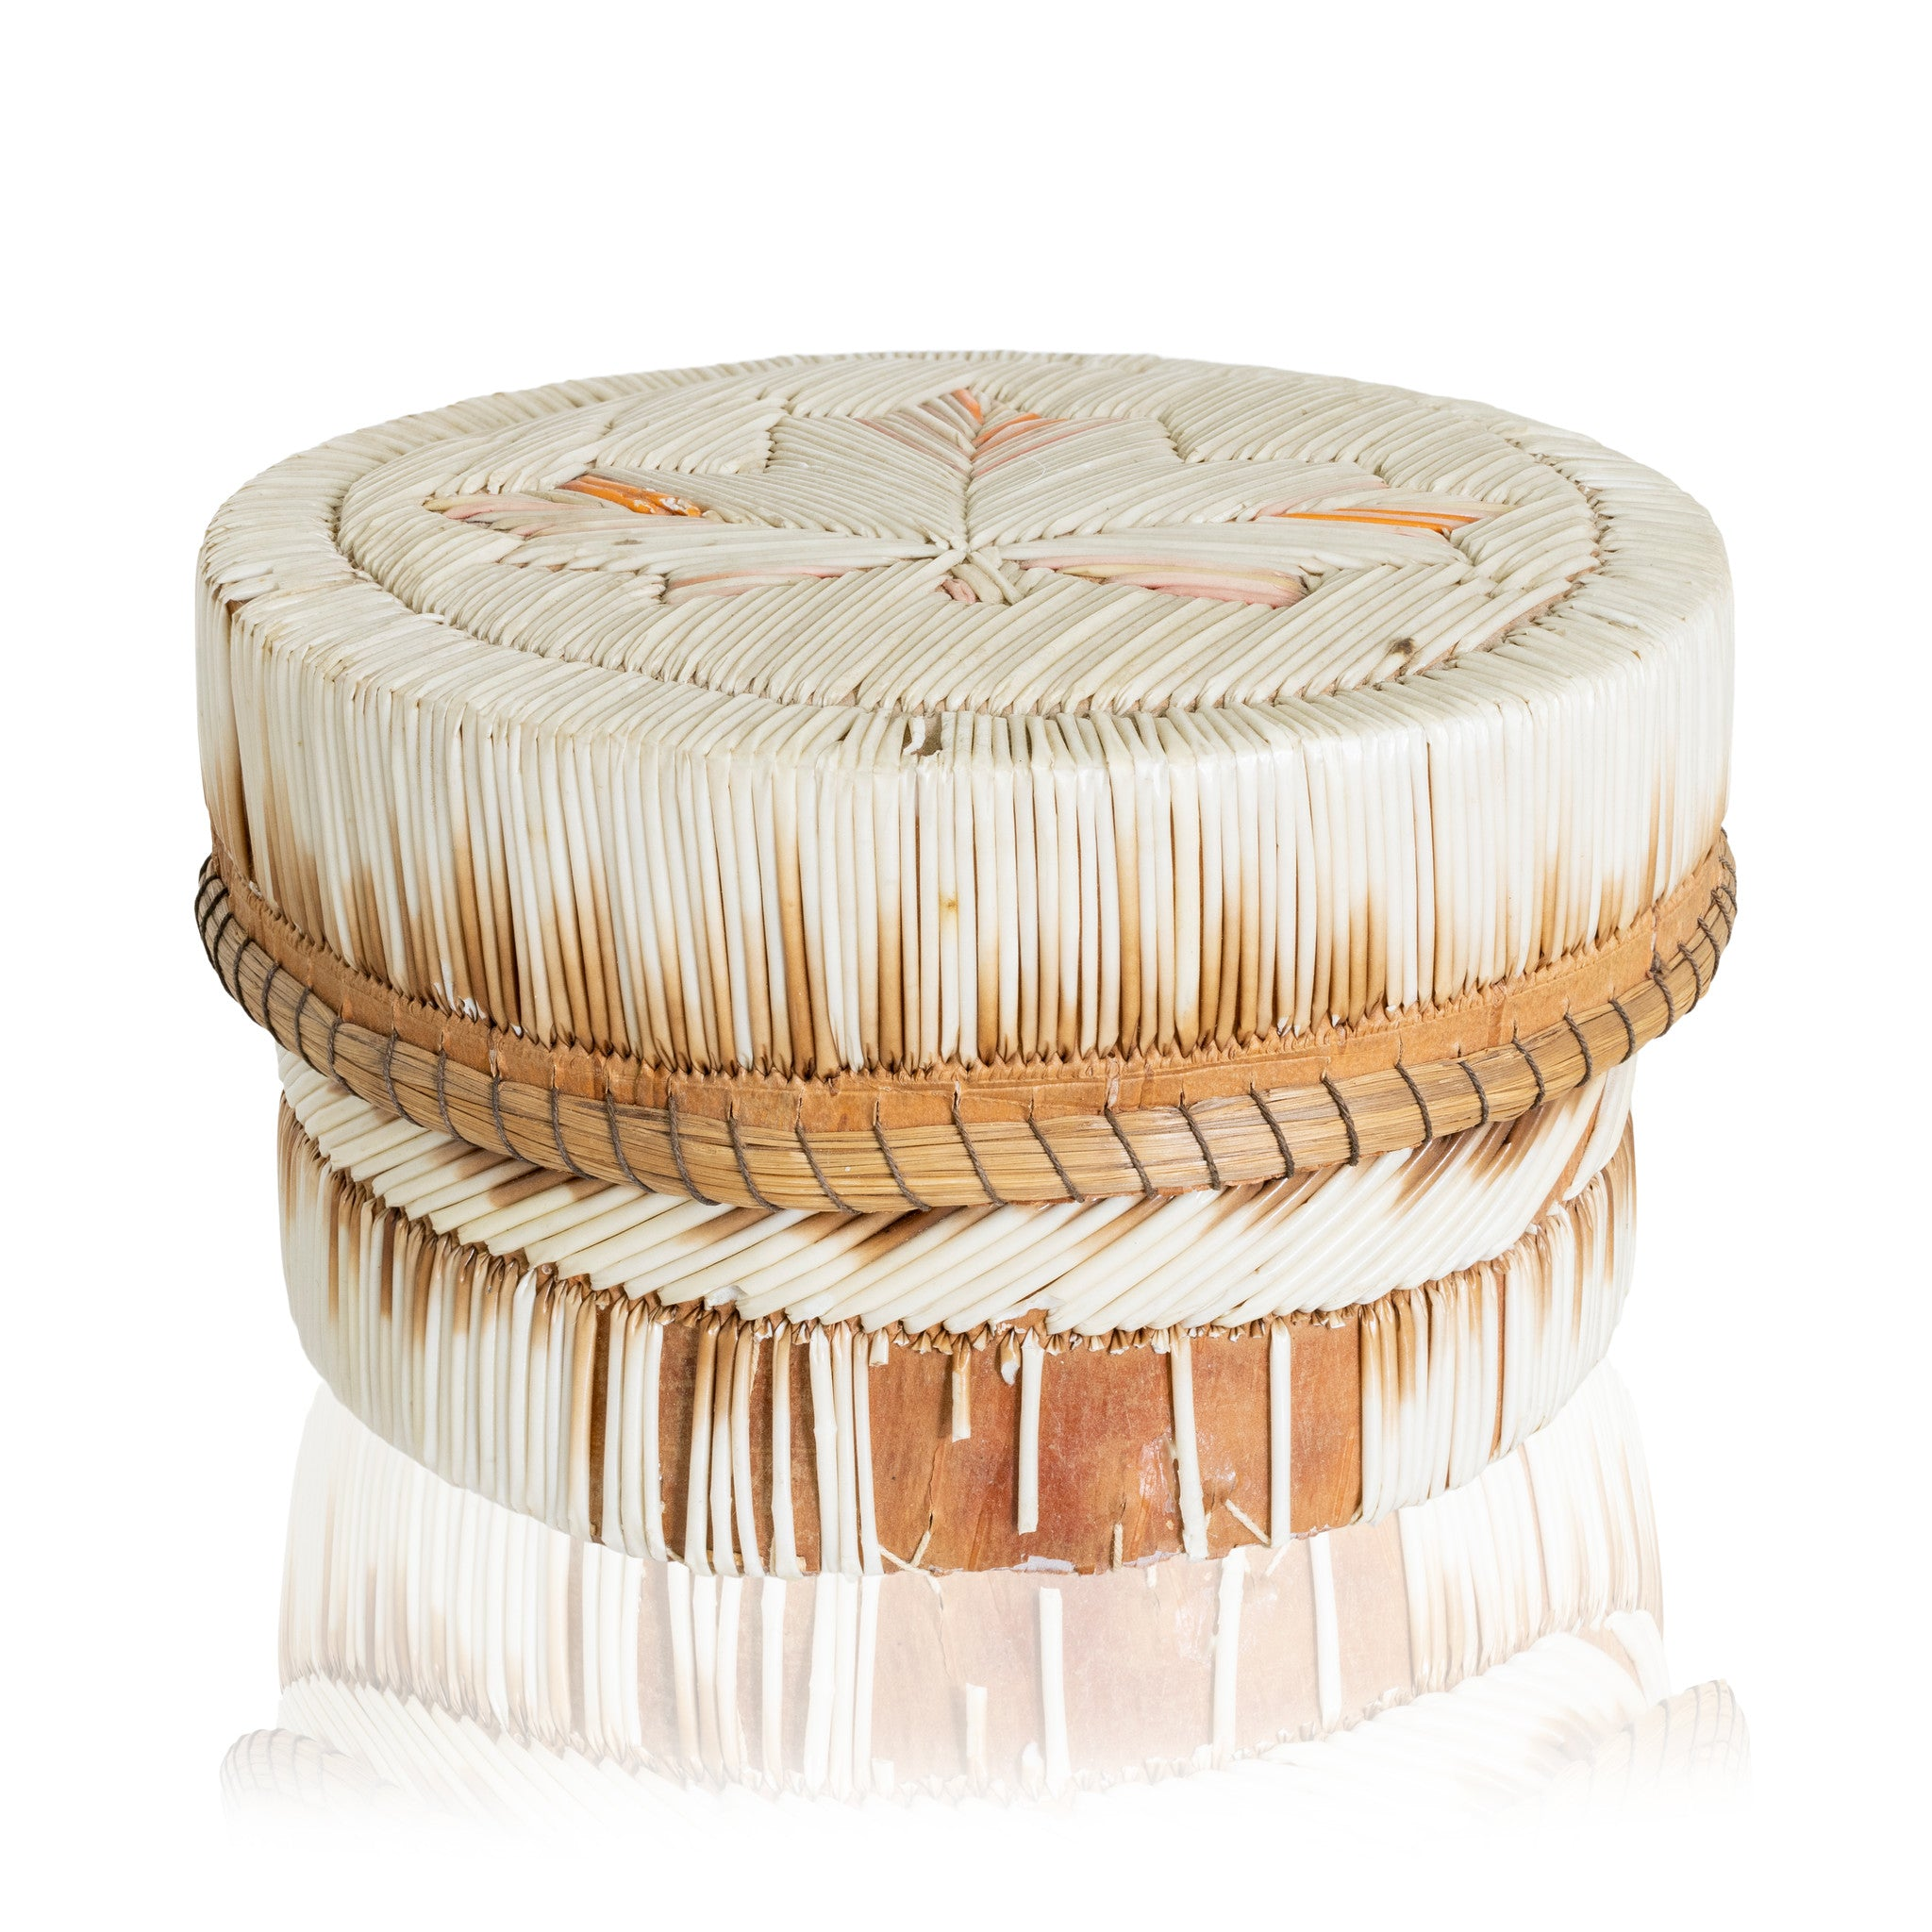 Quilled Birch Bark Box birch bark boxes, chippewa, quilled boxes, quills